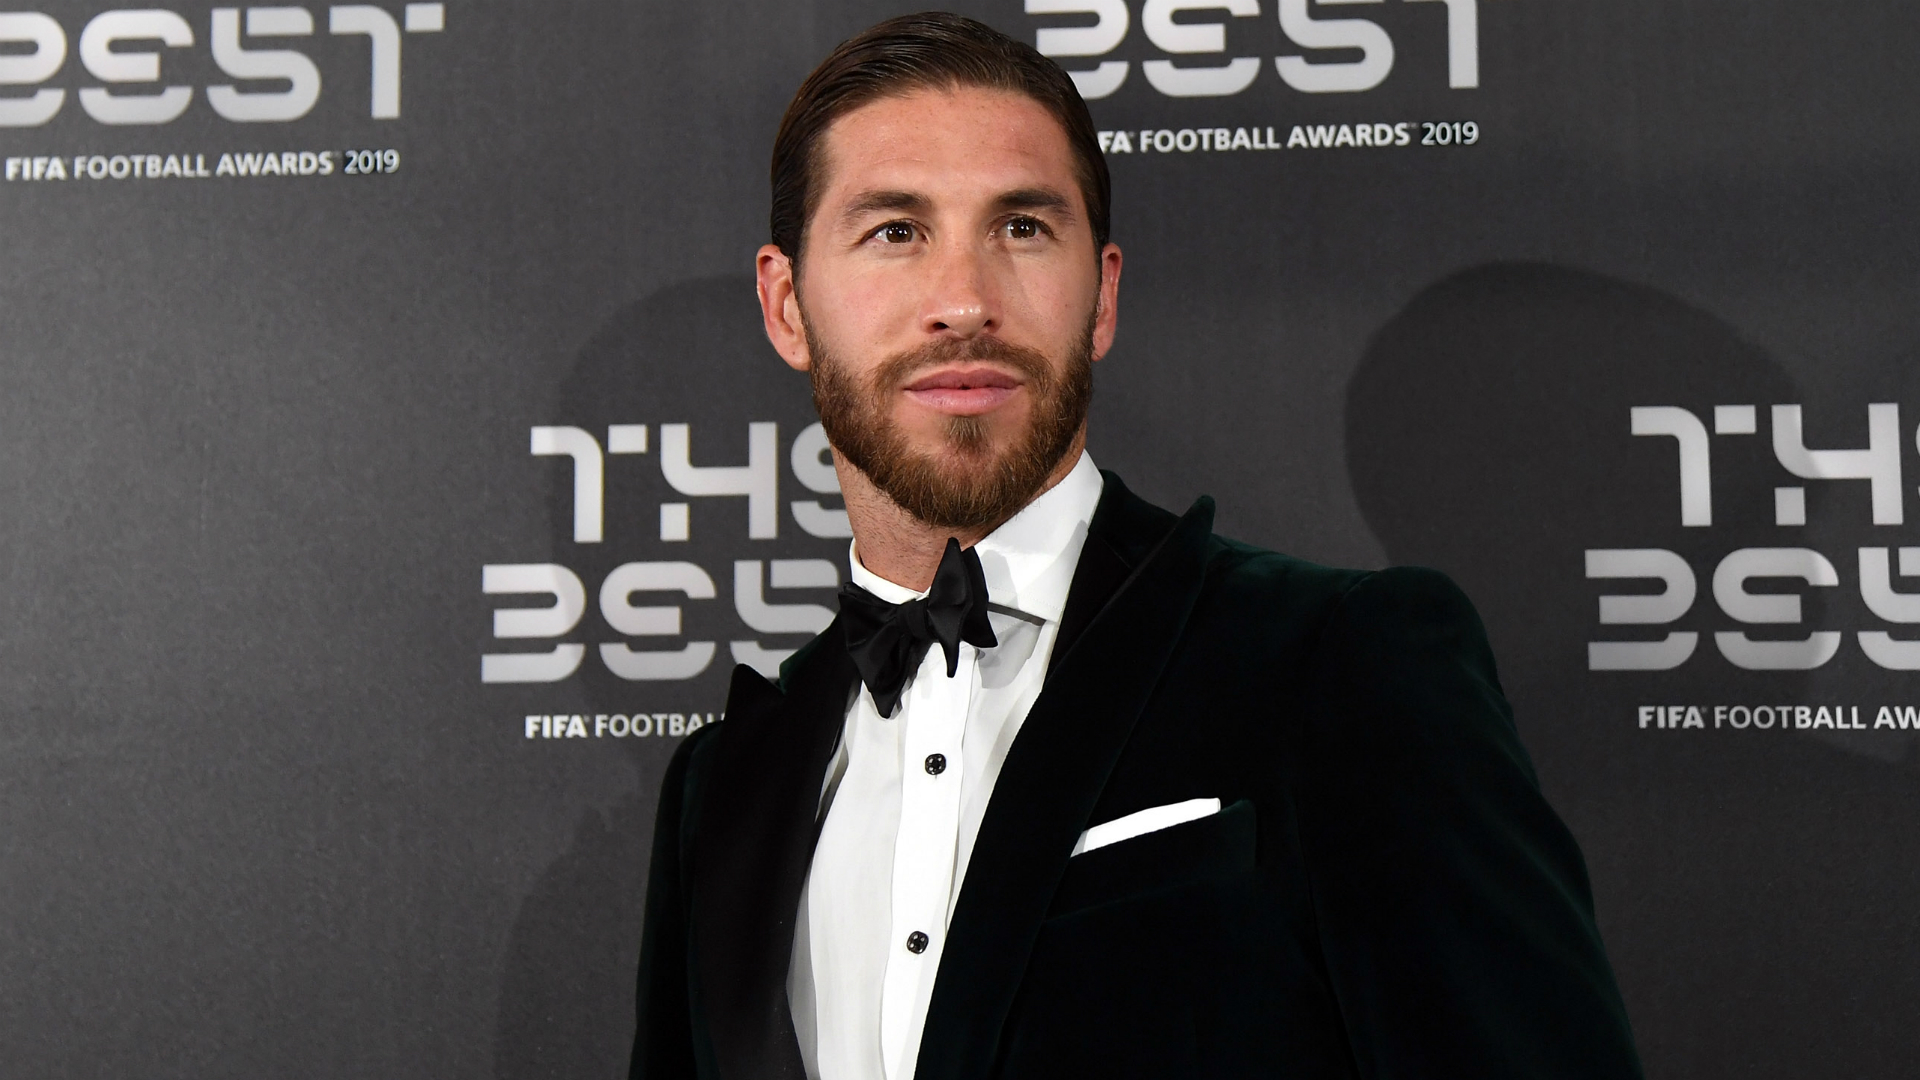 Ramos: I'd have played tennis if I wanted individual trophies